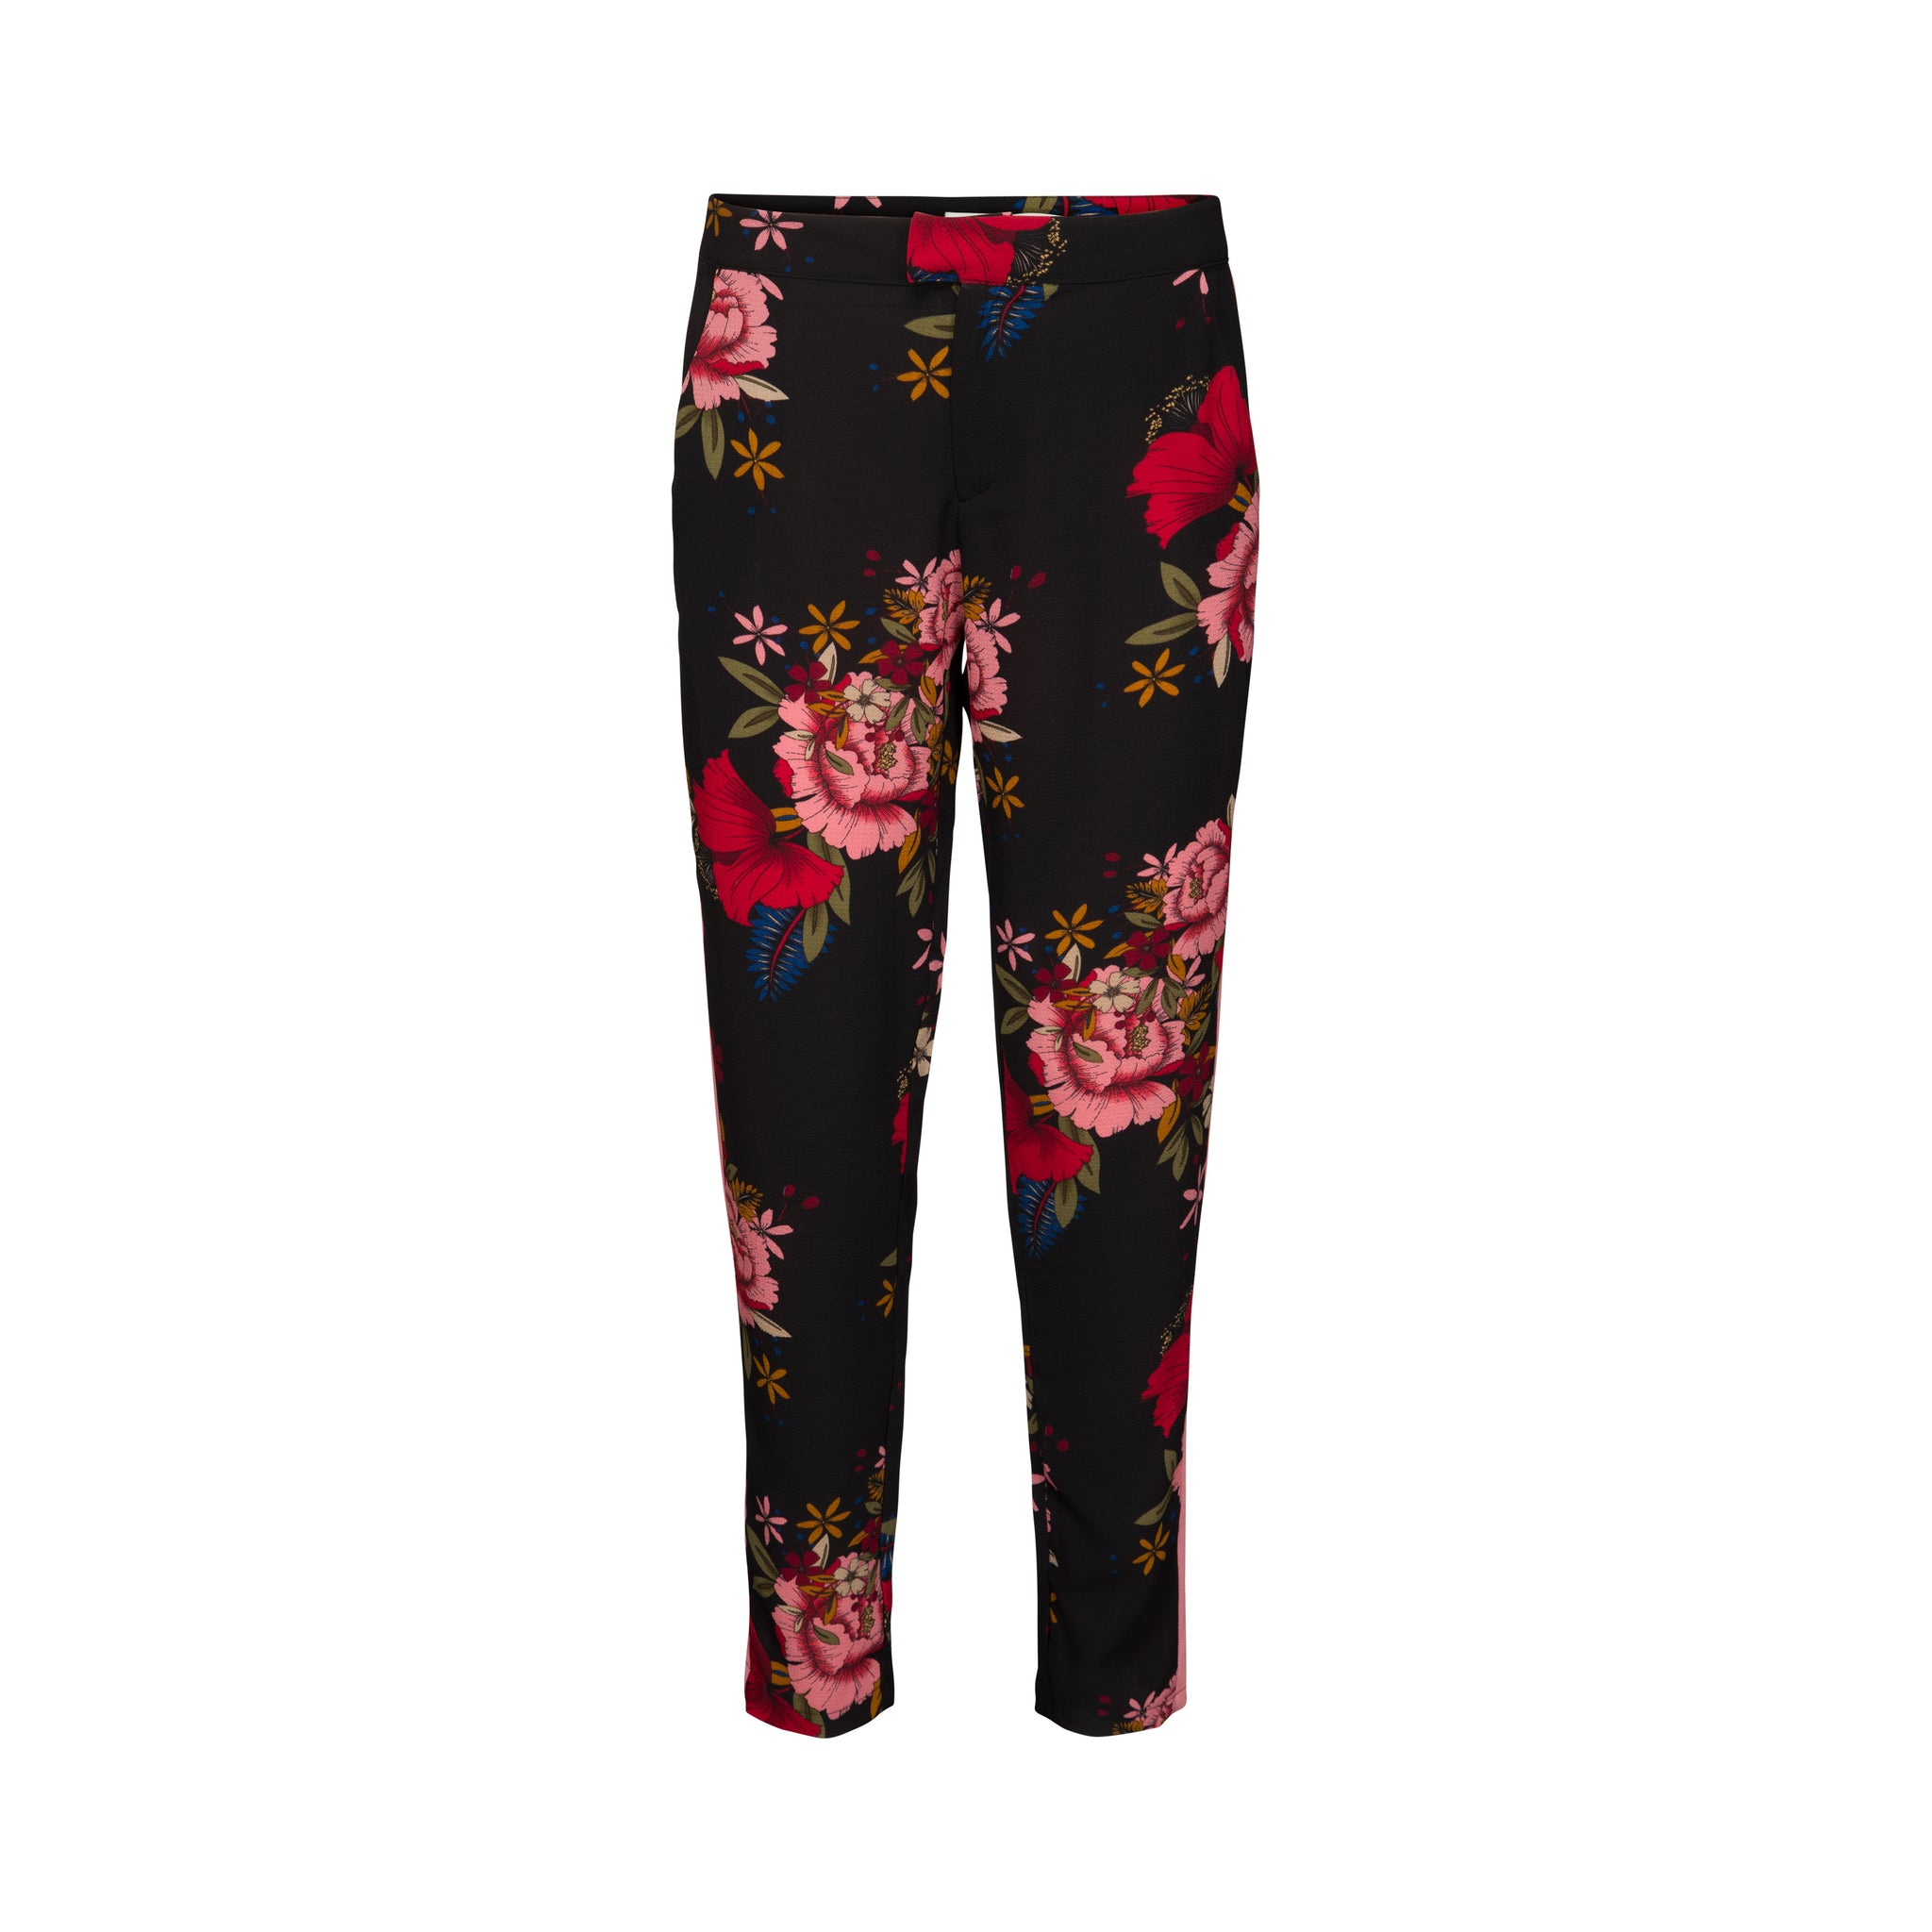 Womens Sofie Schnoor Trousers - Black Flower